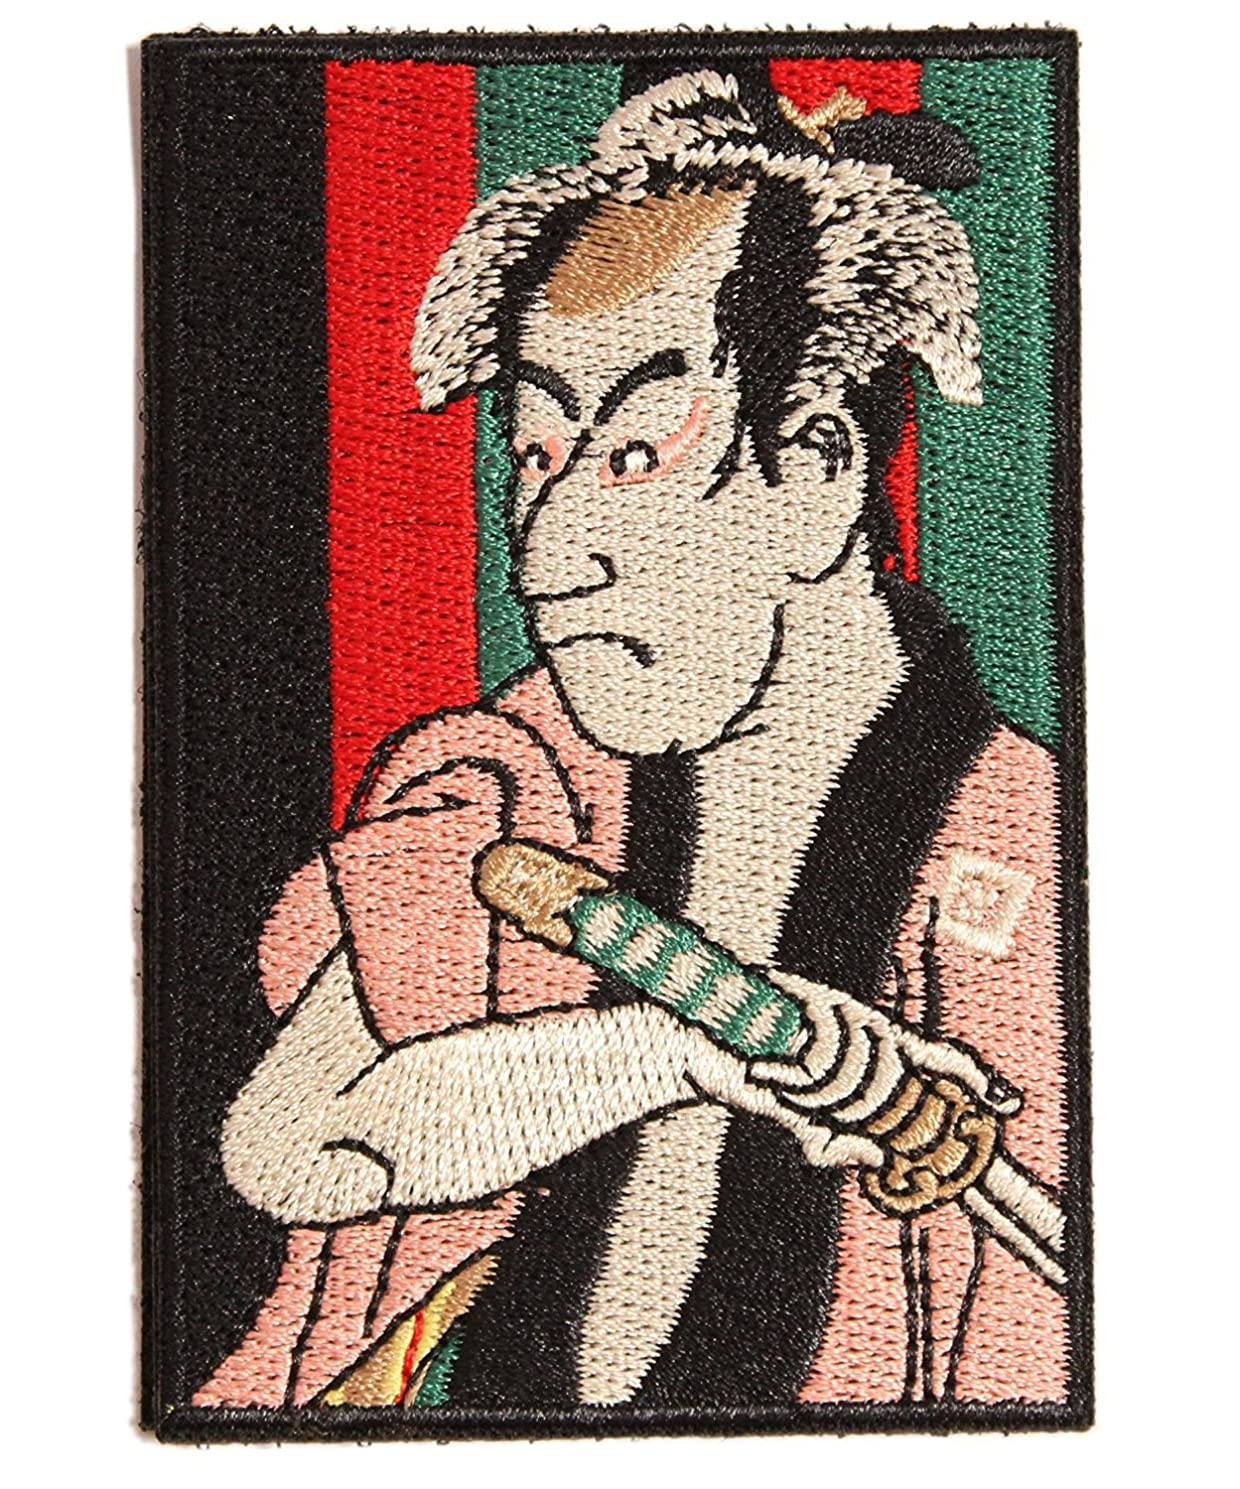 [Japan Import] 100% Embroidery Verclo Patches Ukiyo-e Sharaku Toshusai Kabuki A0199